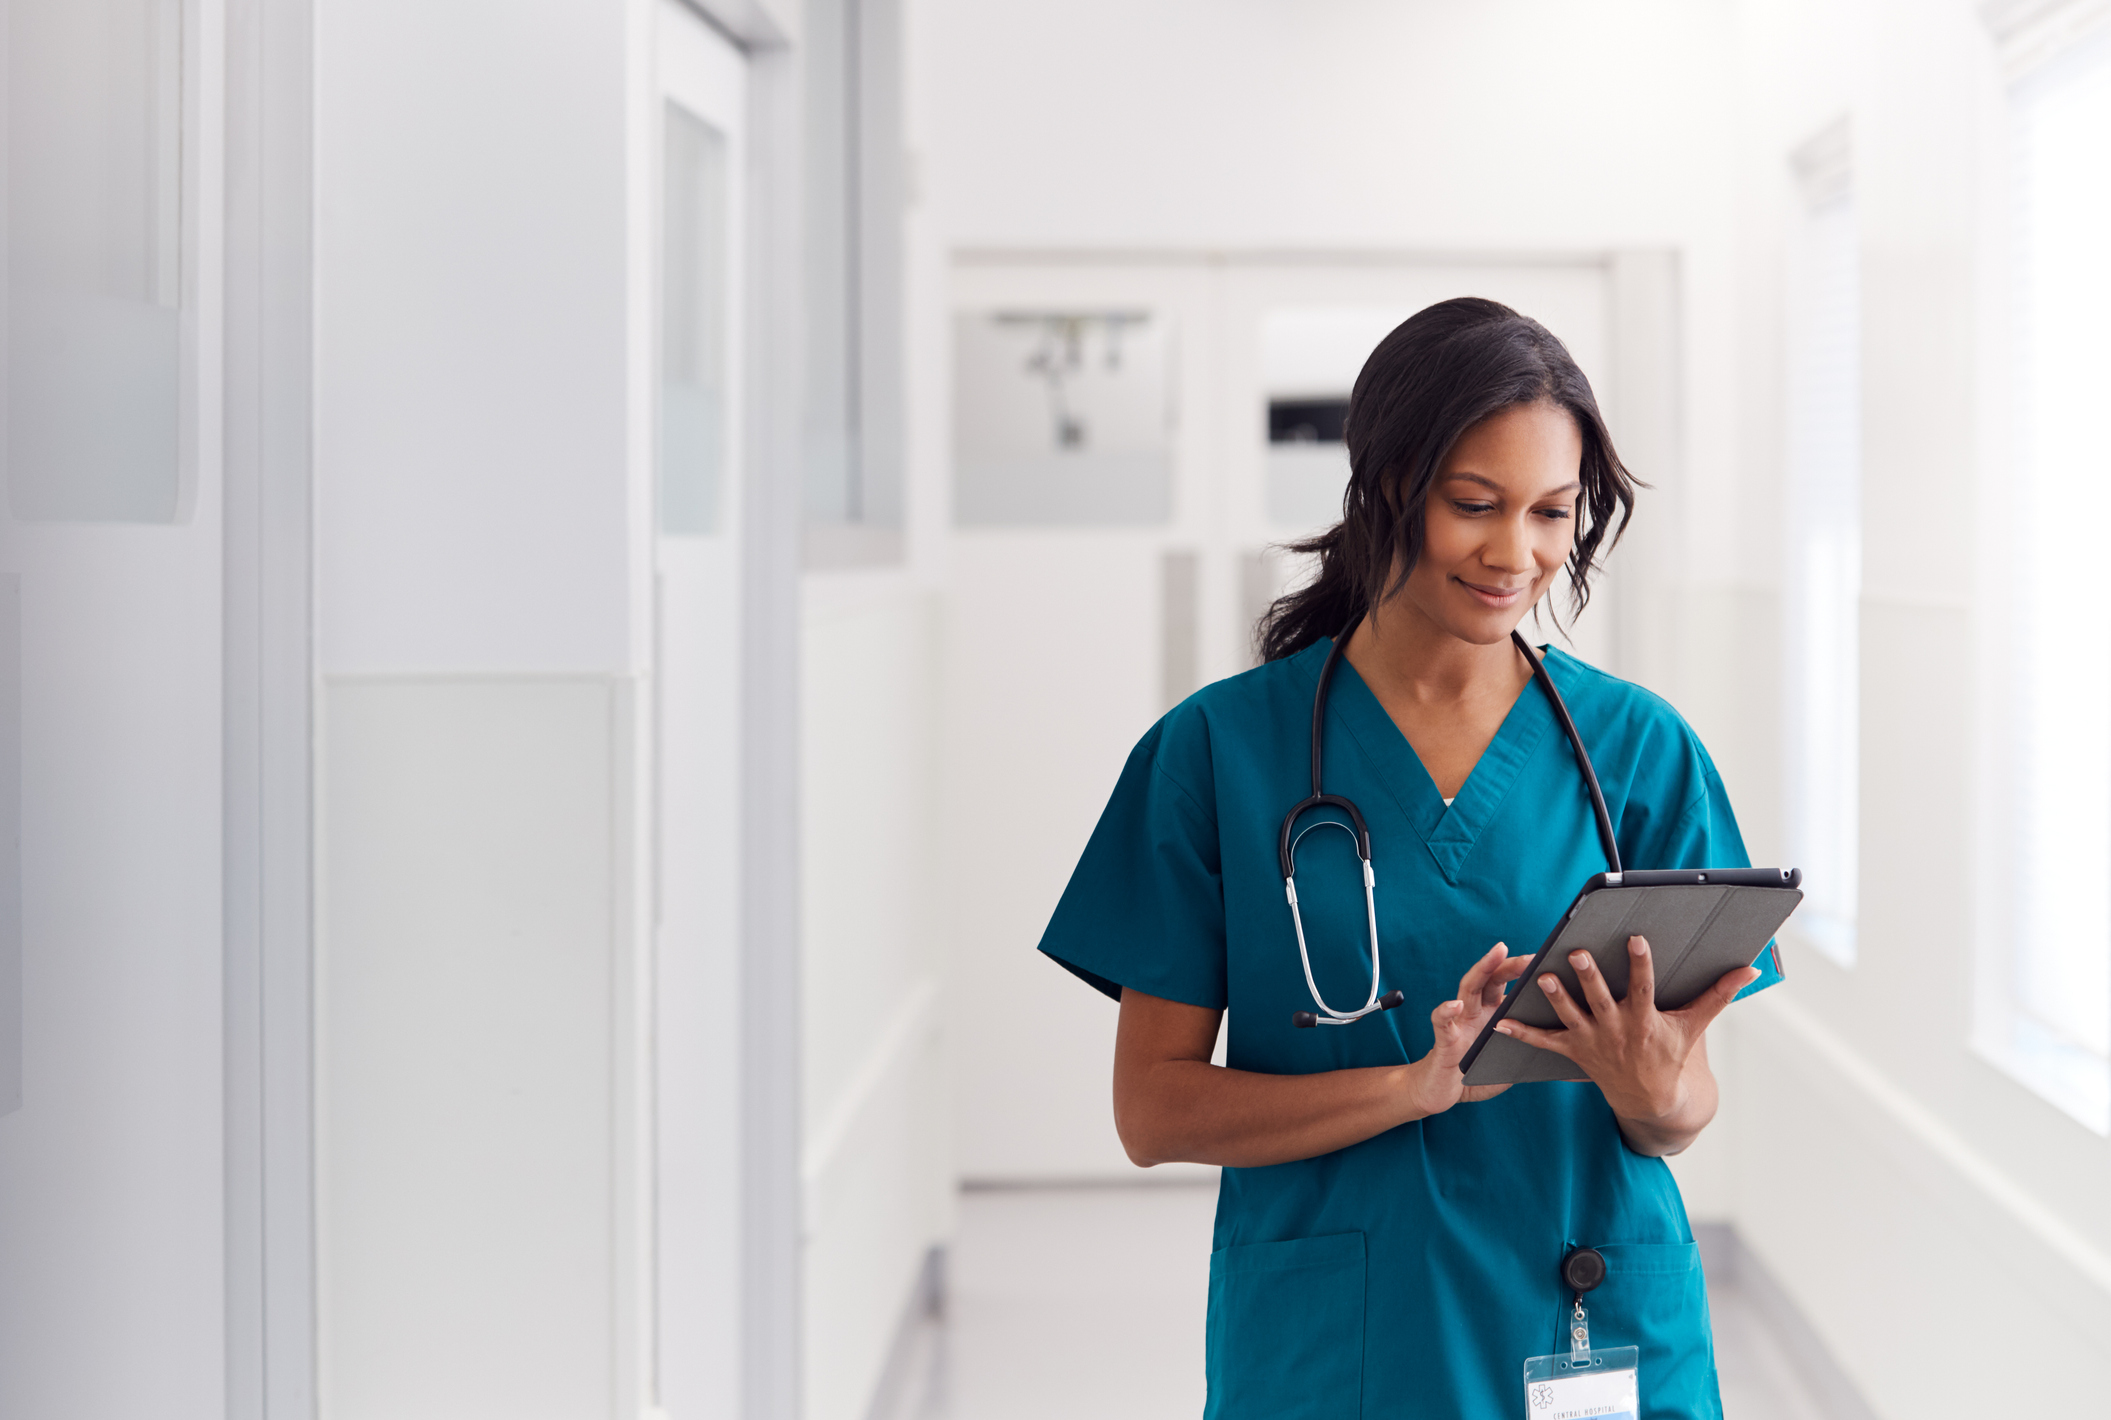 Bridging the Gap Between Fee-for-Service and Value-Based Care Models